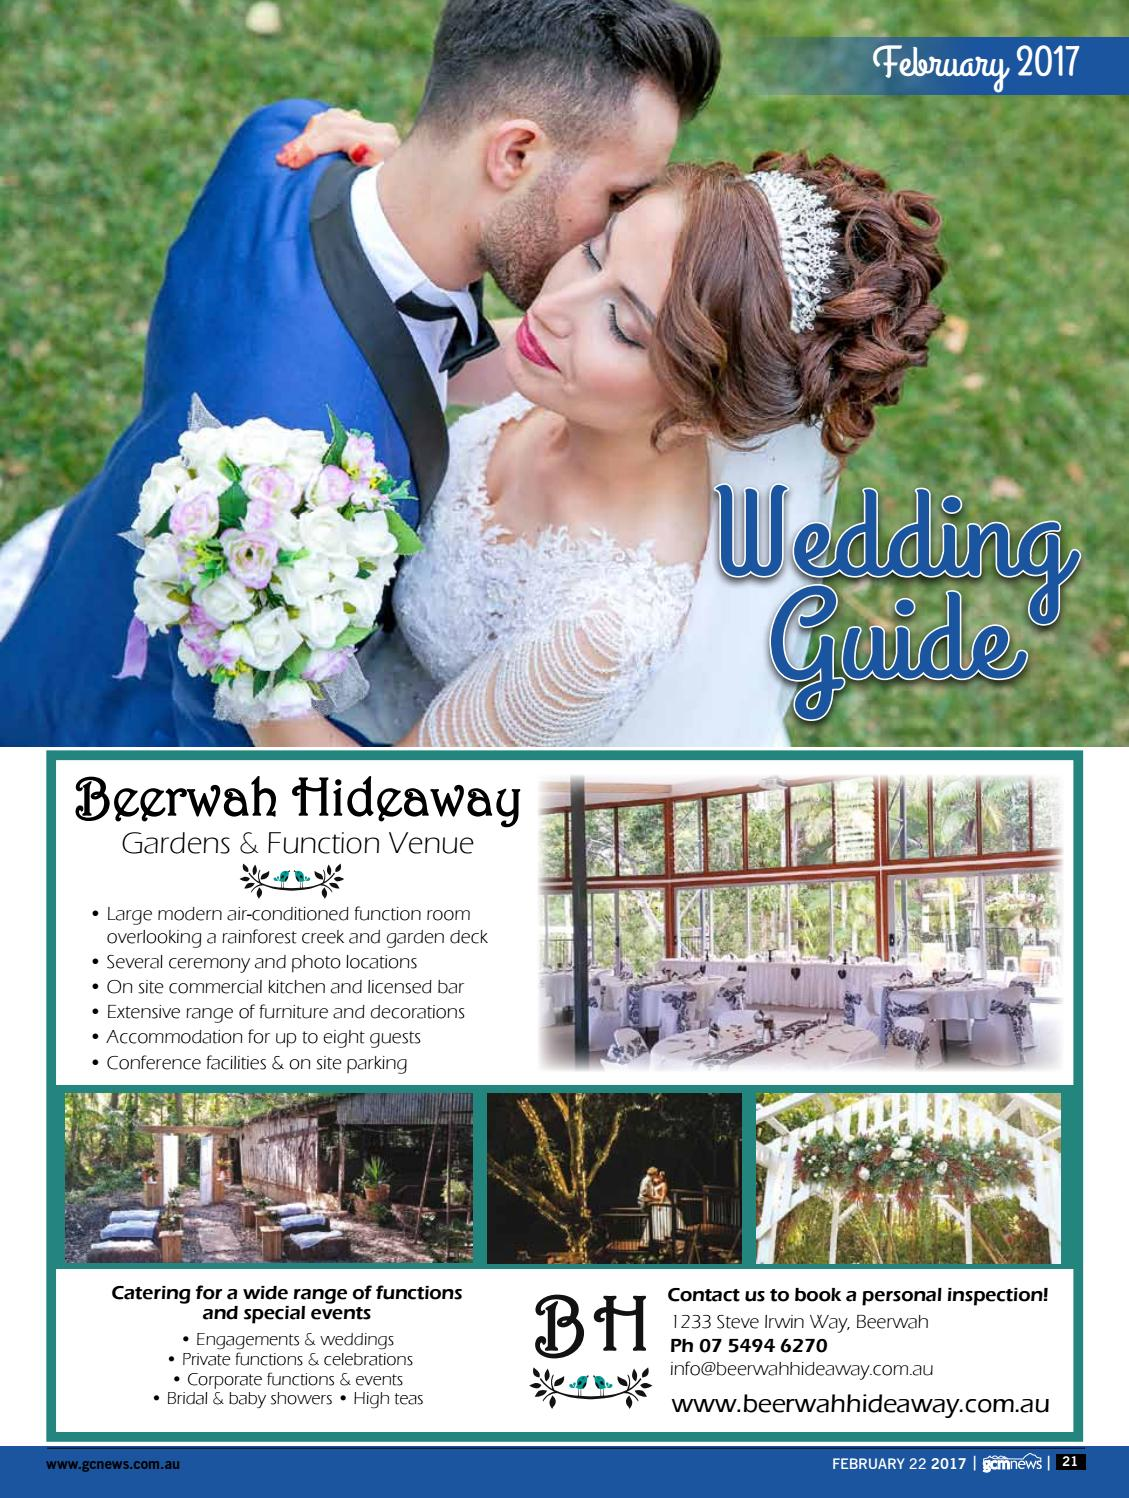 wedding ideas for february 2017 wedding guide february 2017 by glasshouse country news issuu 28133